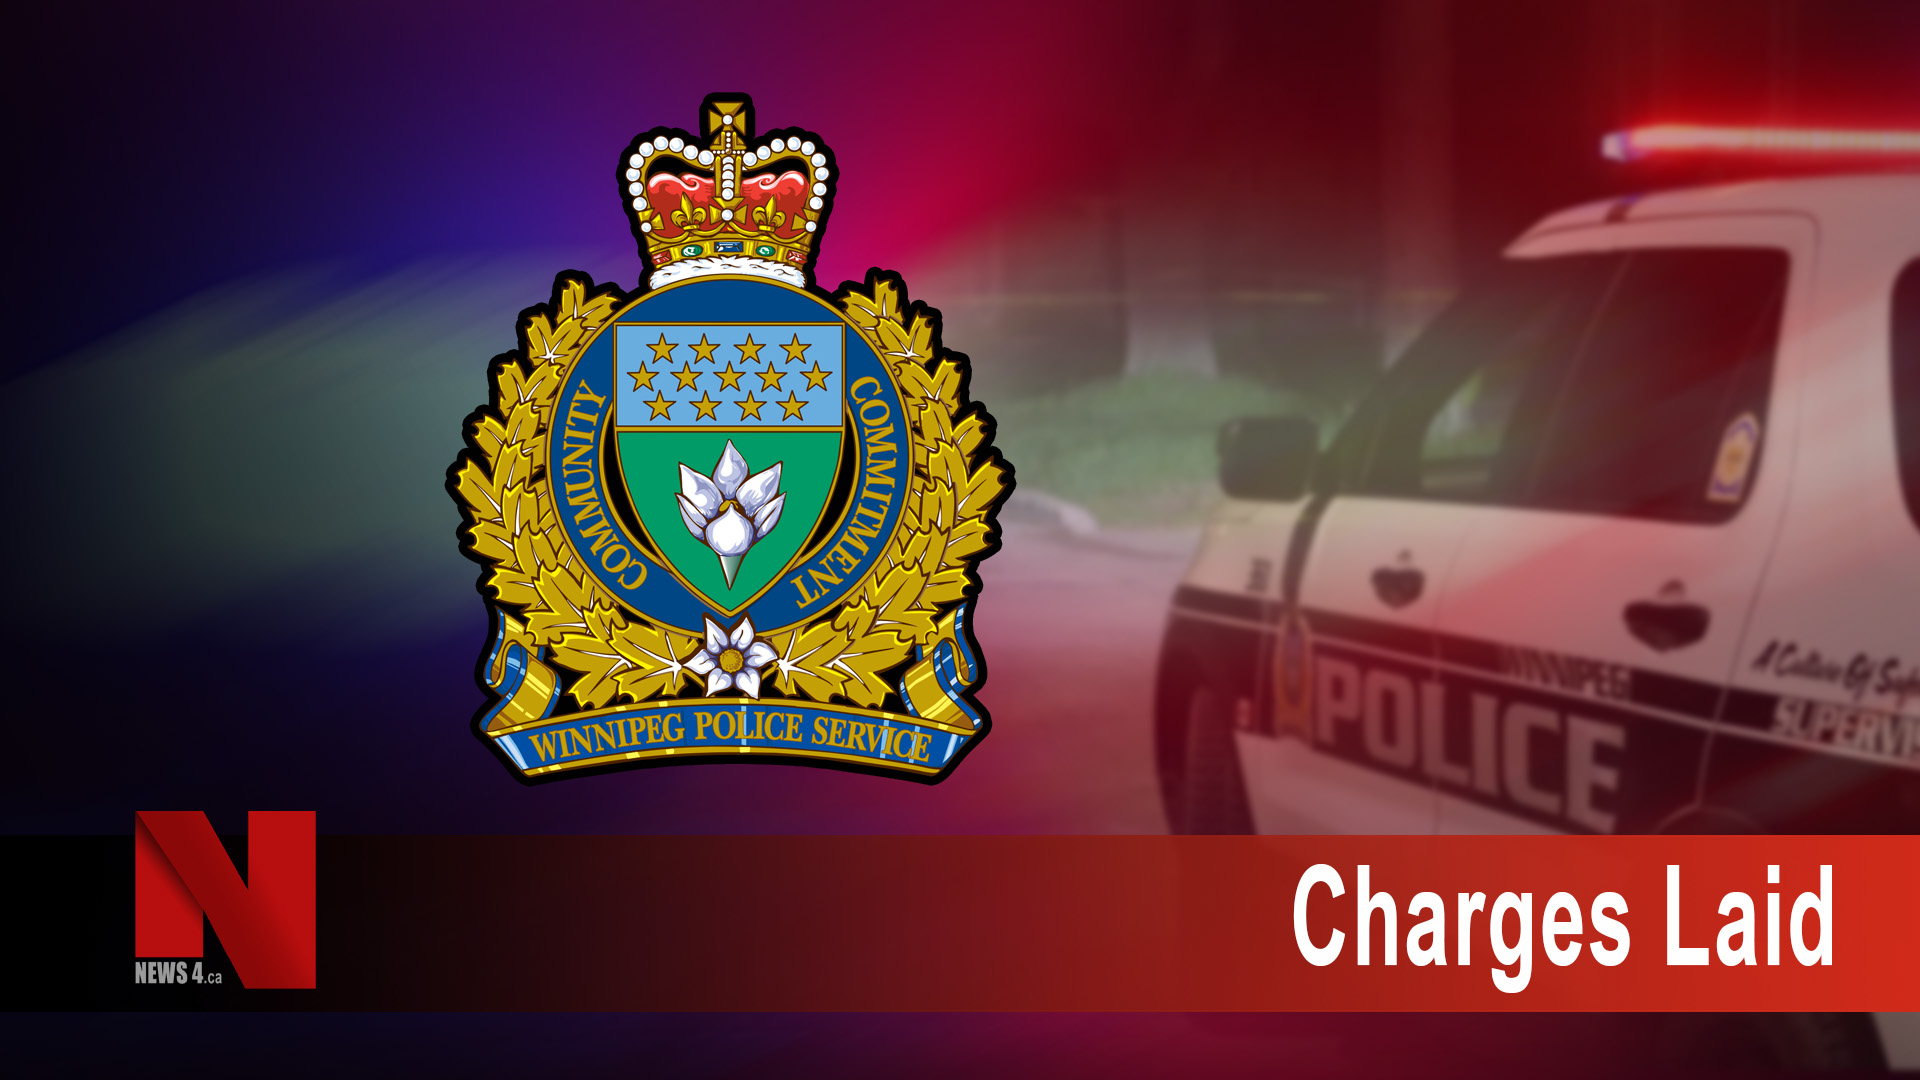 Charges Laid